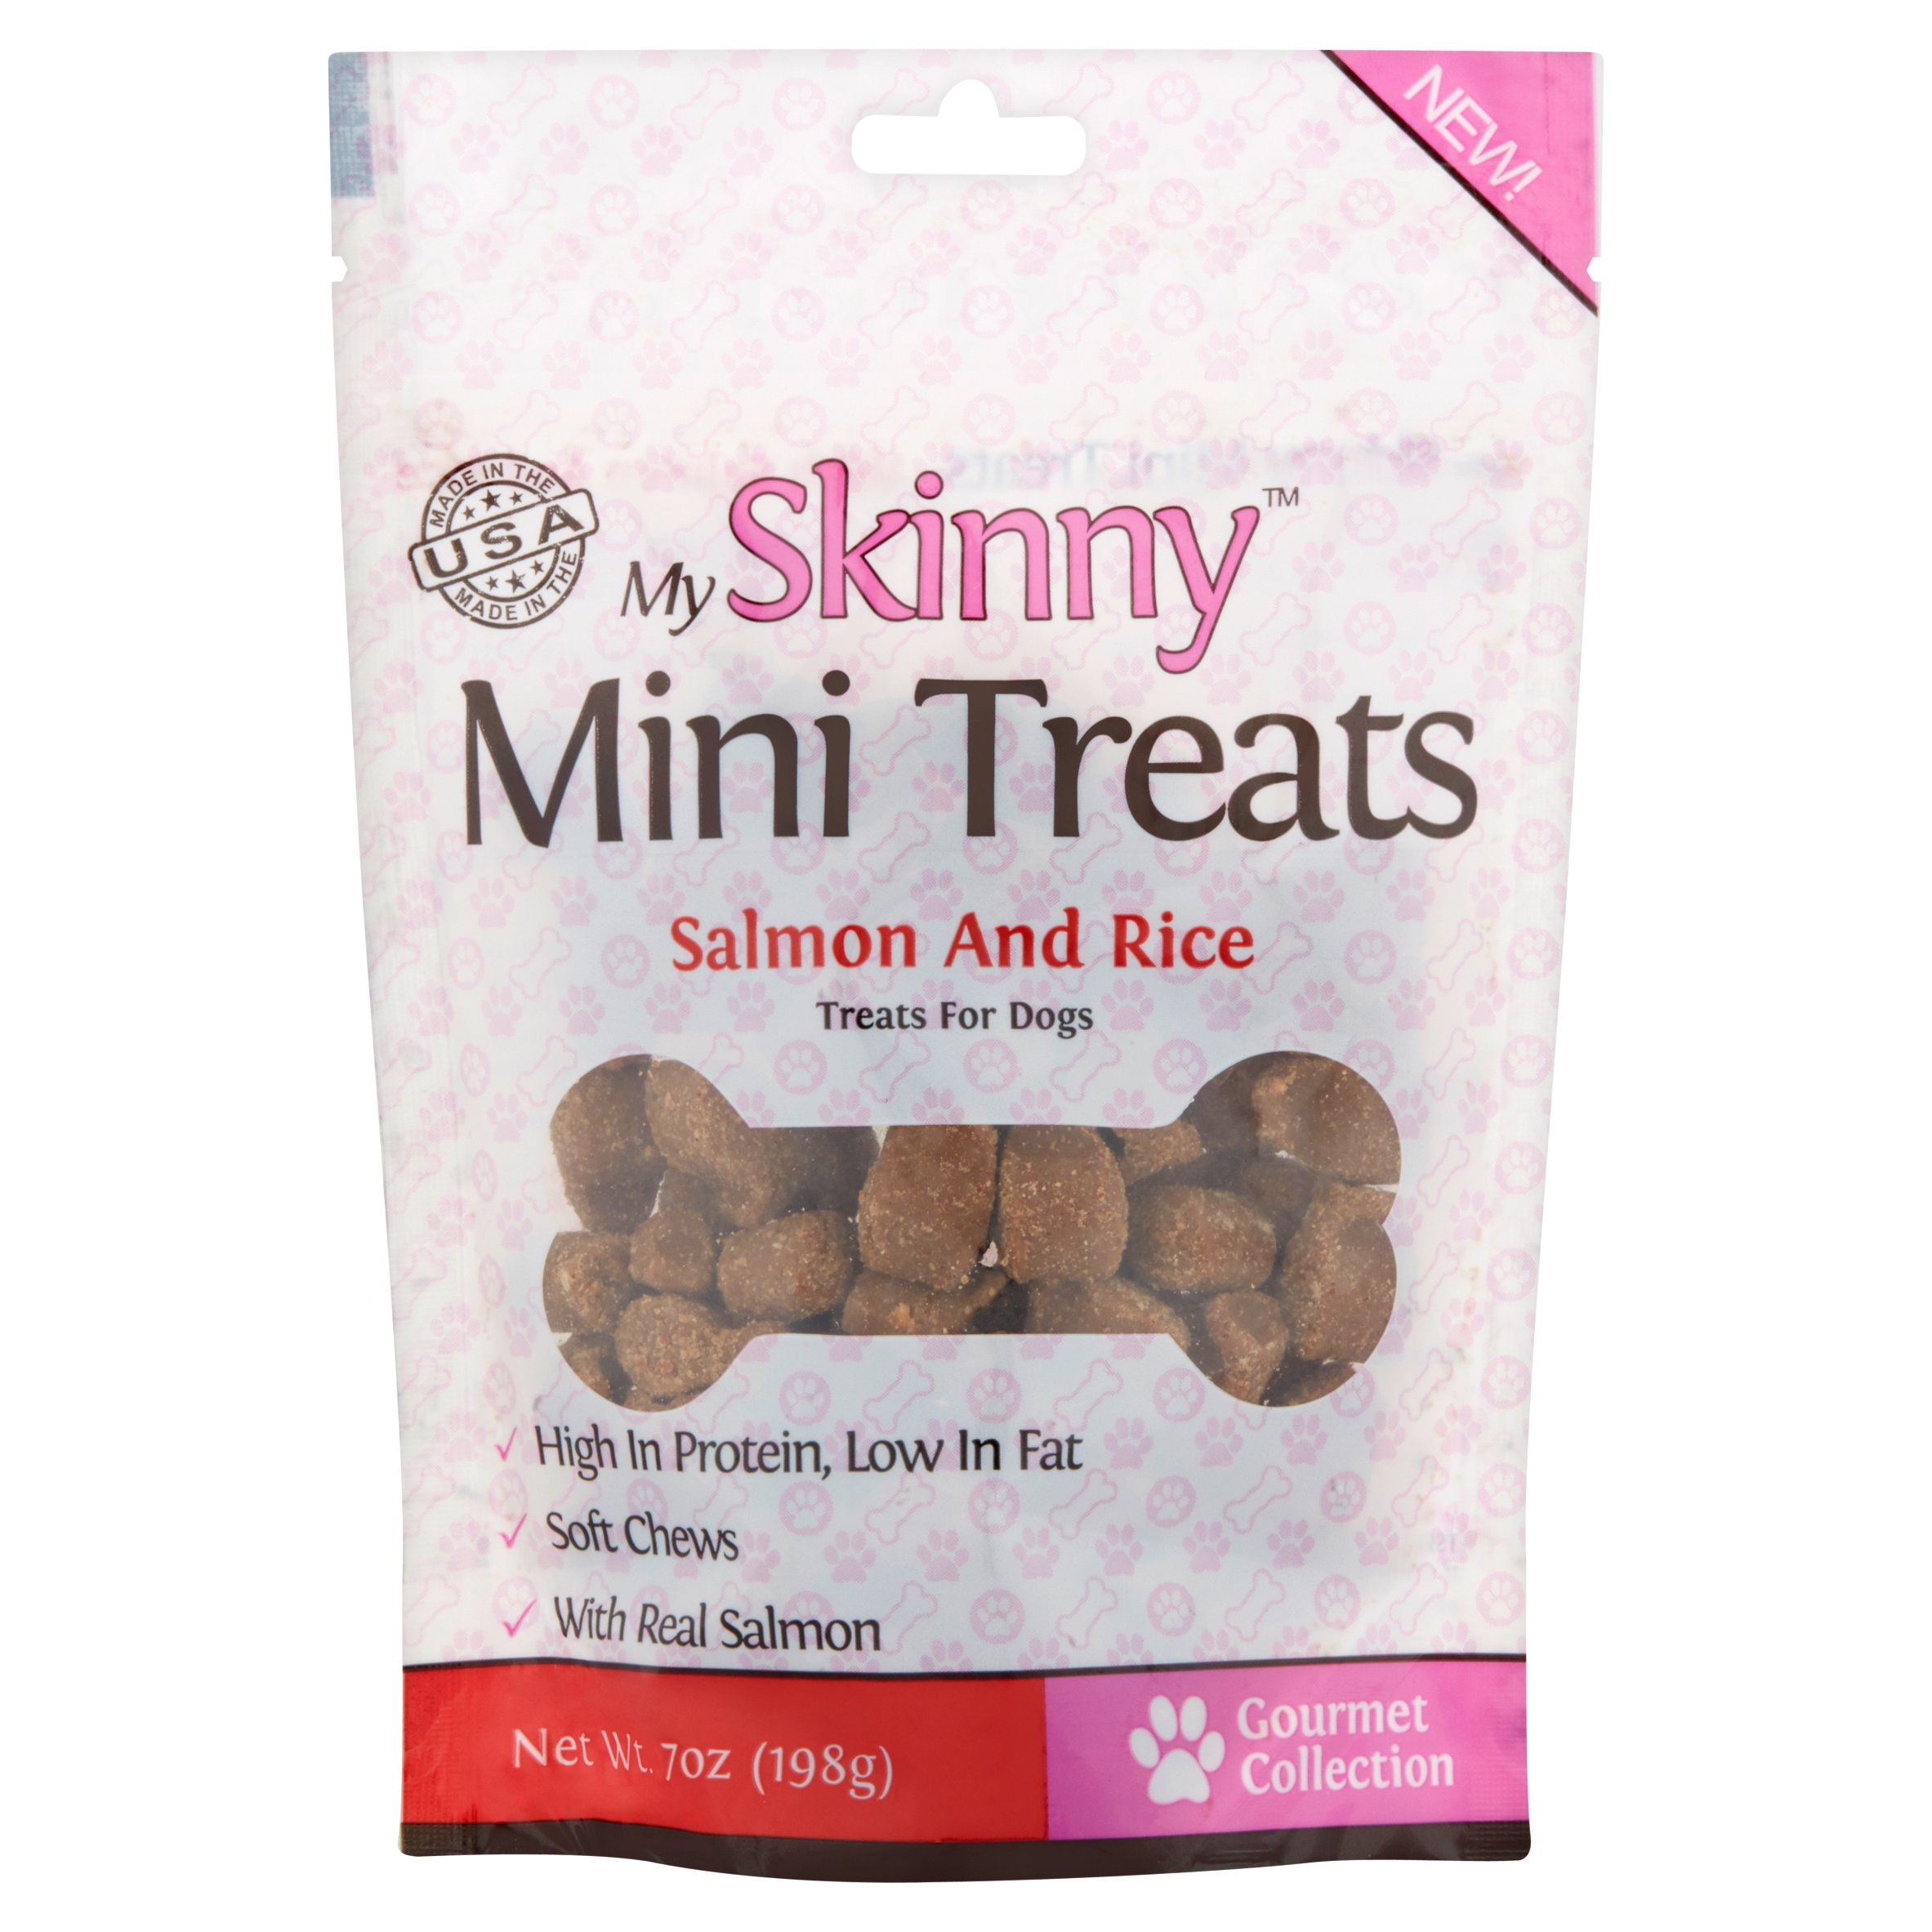 My Skinny Mini Treats Gourmet Collection Salmon & Rice Mini Treats for Dogs, 7 oz